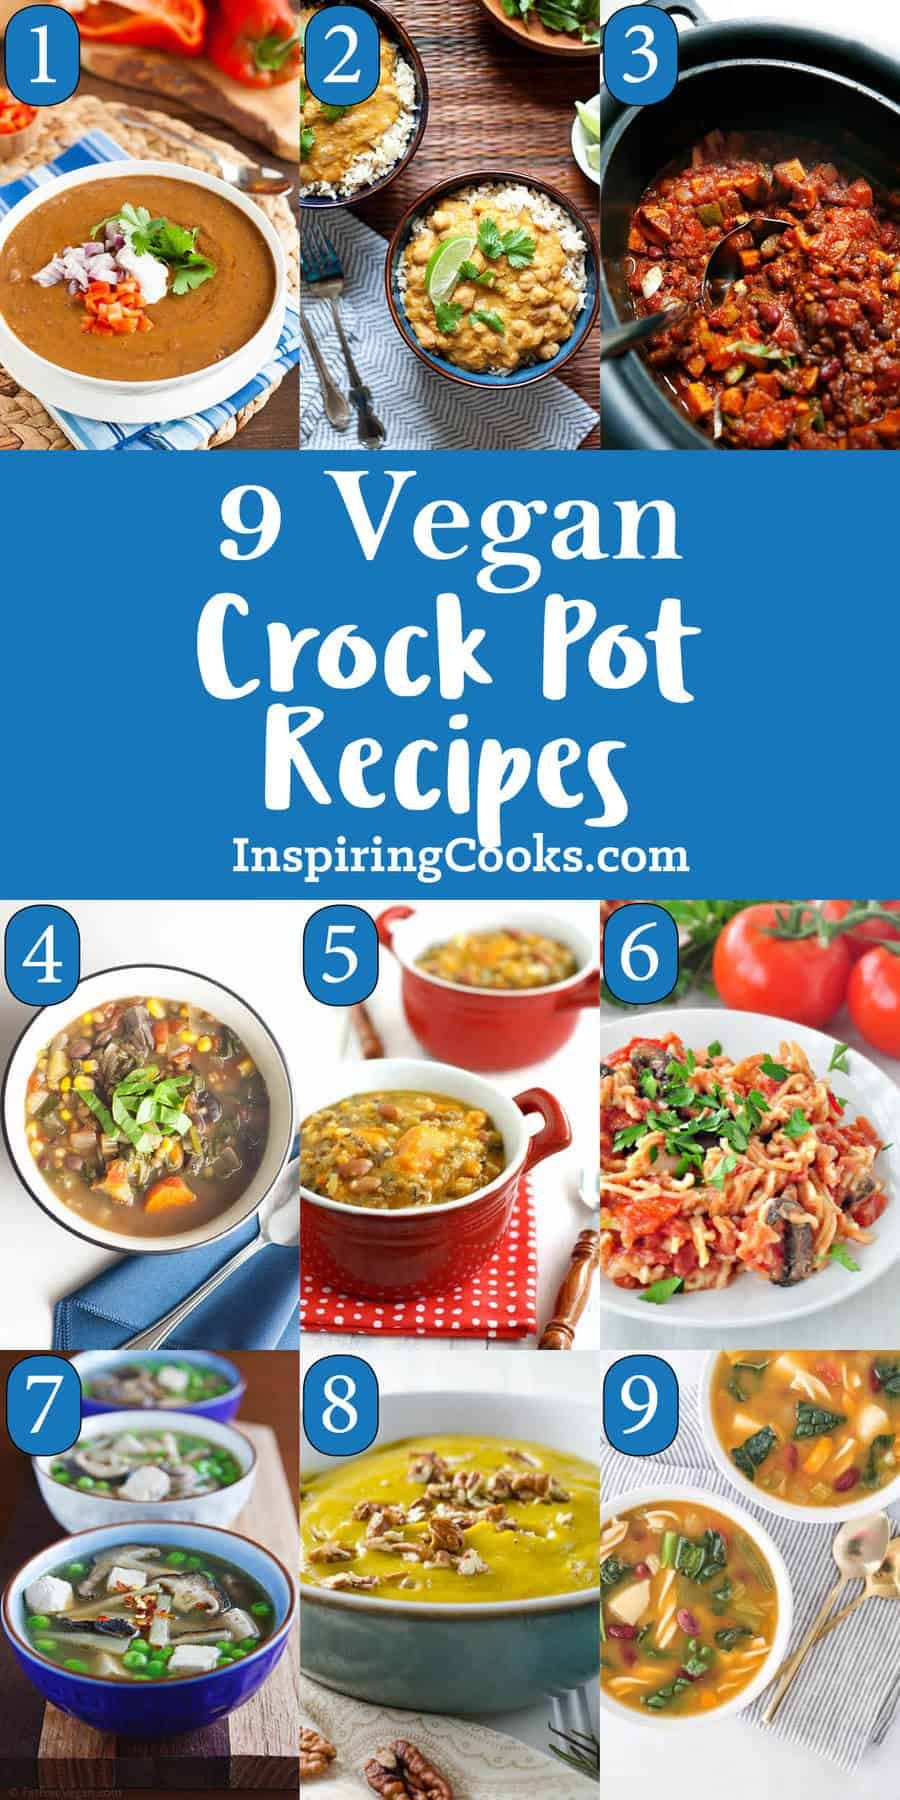 9 Of The Best Ever Vegan Crock Pot Recipes To Be Found